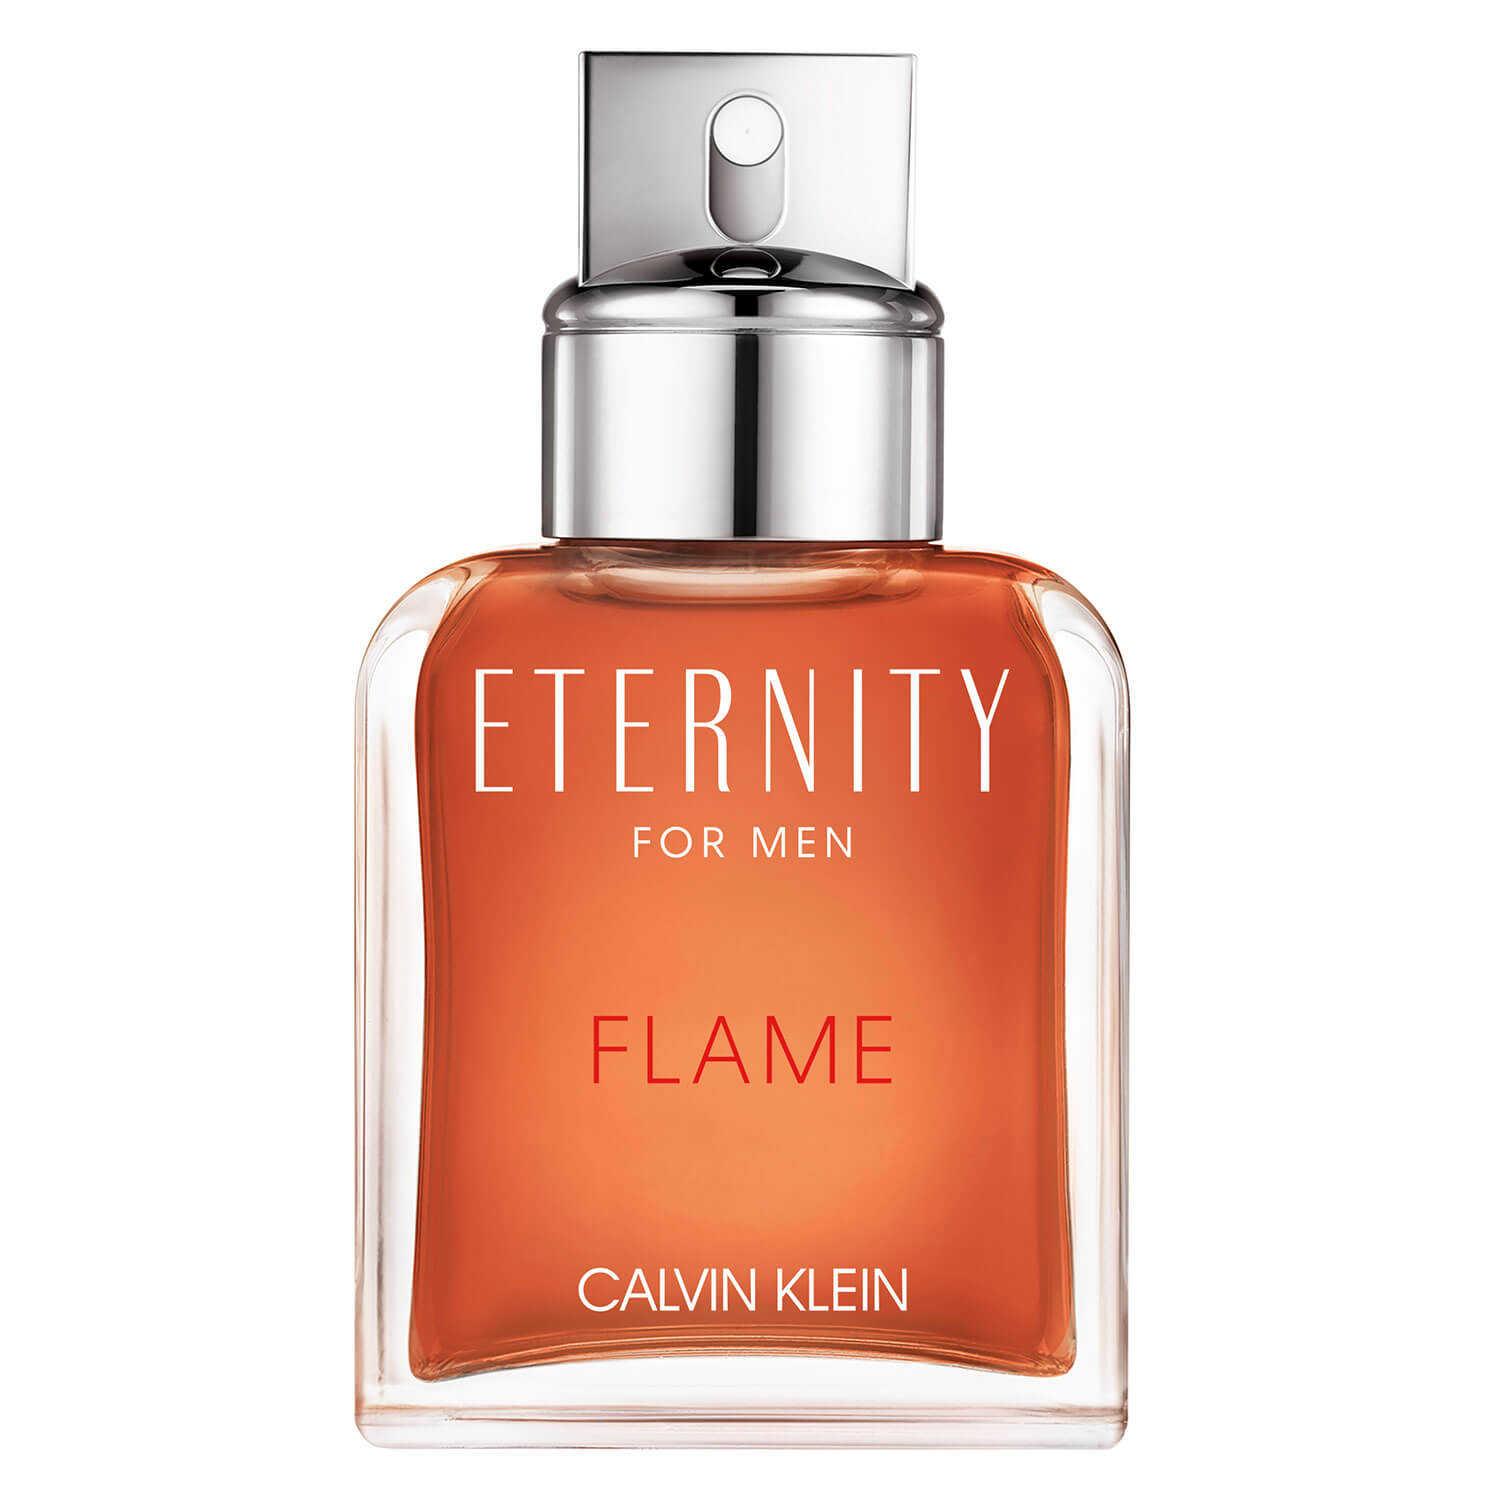 Eternity - For Men Flame Eau de Toilette